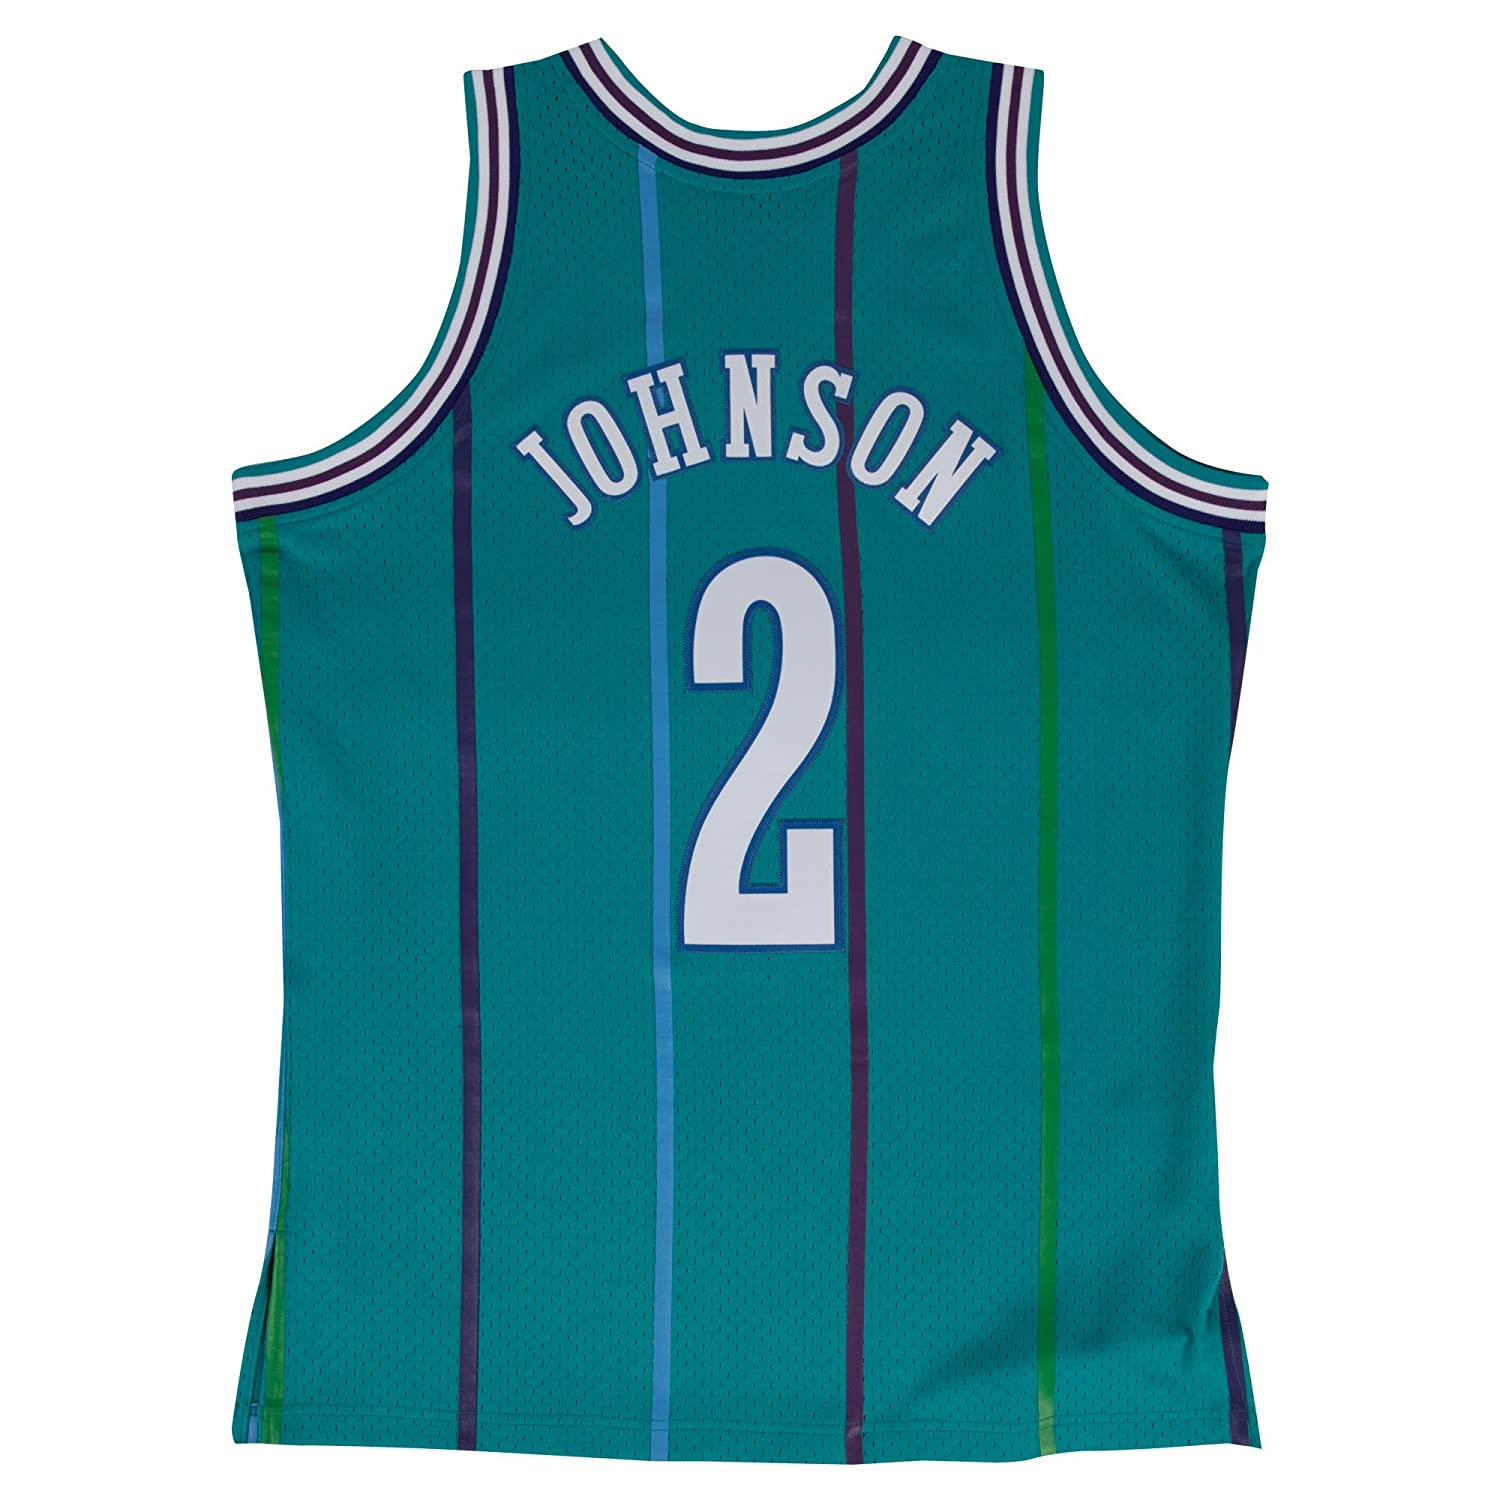 b1789f408ef Amazon.com : Mitchell & Ness Larry Johnson 1992-93 Charlotte Hornets Teal  Swingman Jersey : Clothing